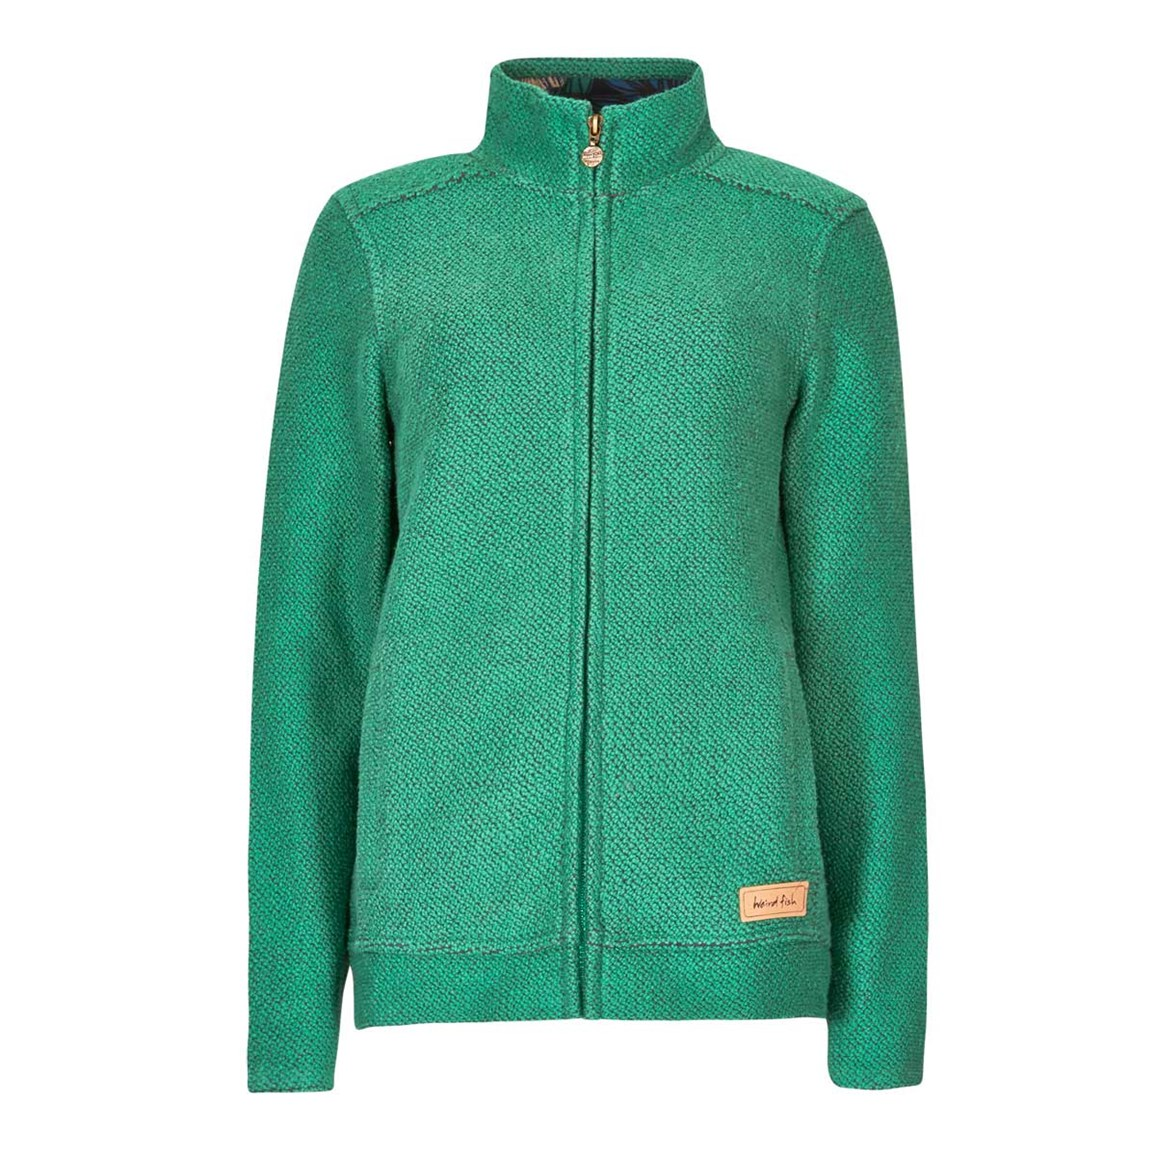 Image of Weird Fish Wilderness Full Zip Classic Macaroni Sweatshirt Fir Green Size 10